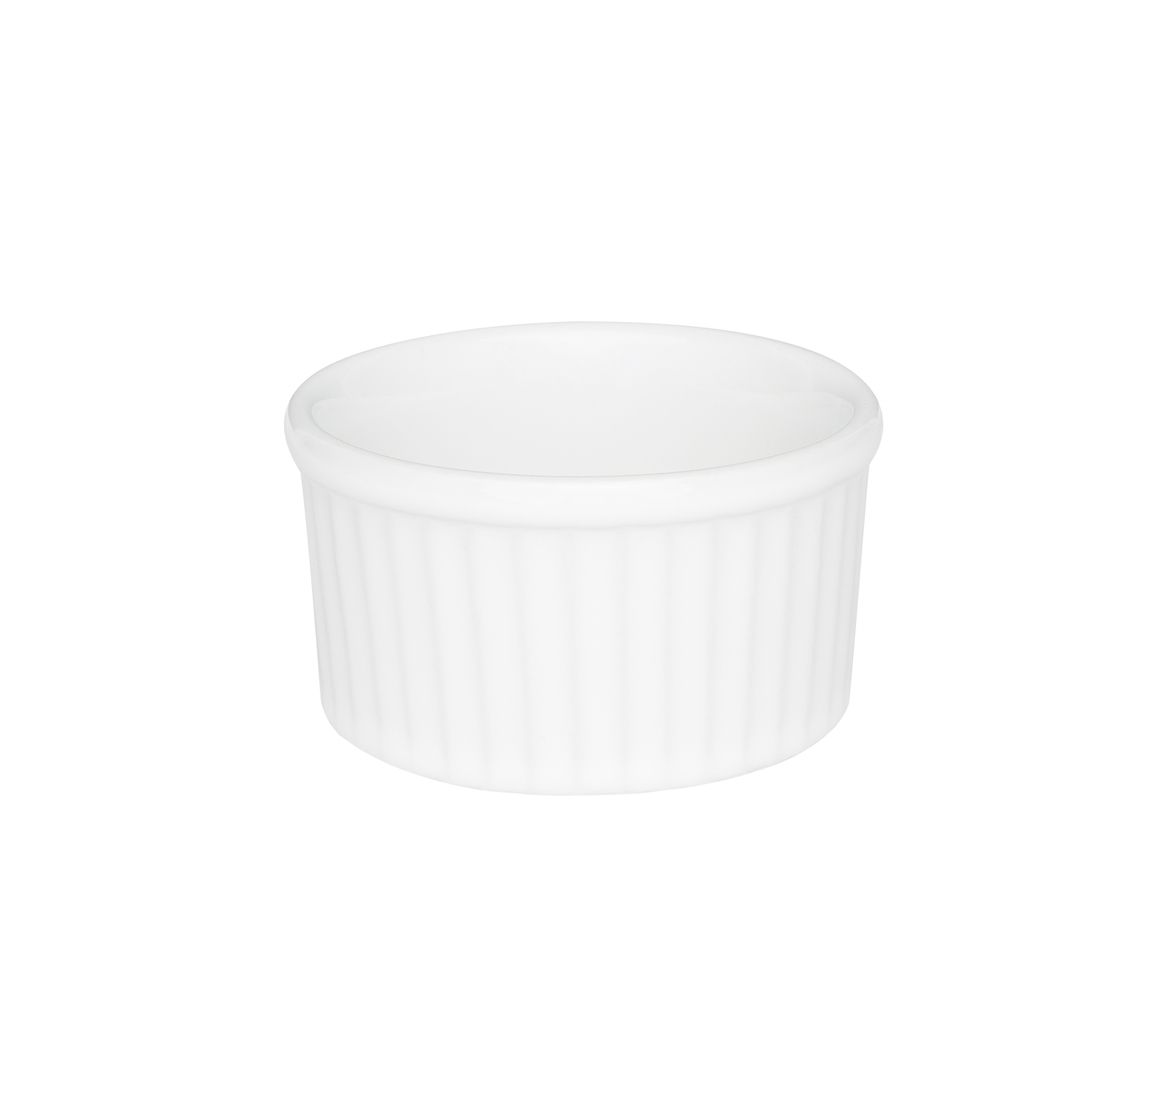 Tigela Ramequin 8X4Cm 100Ml - Branco - Oxford Porcelanas